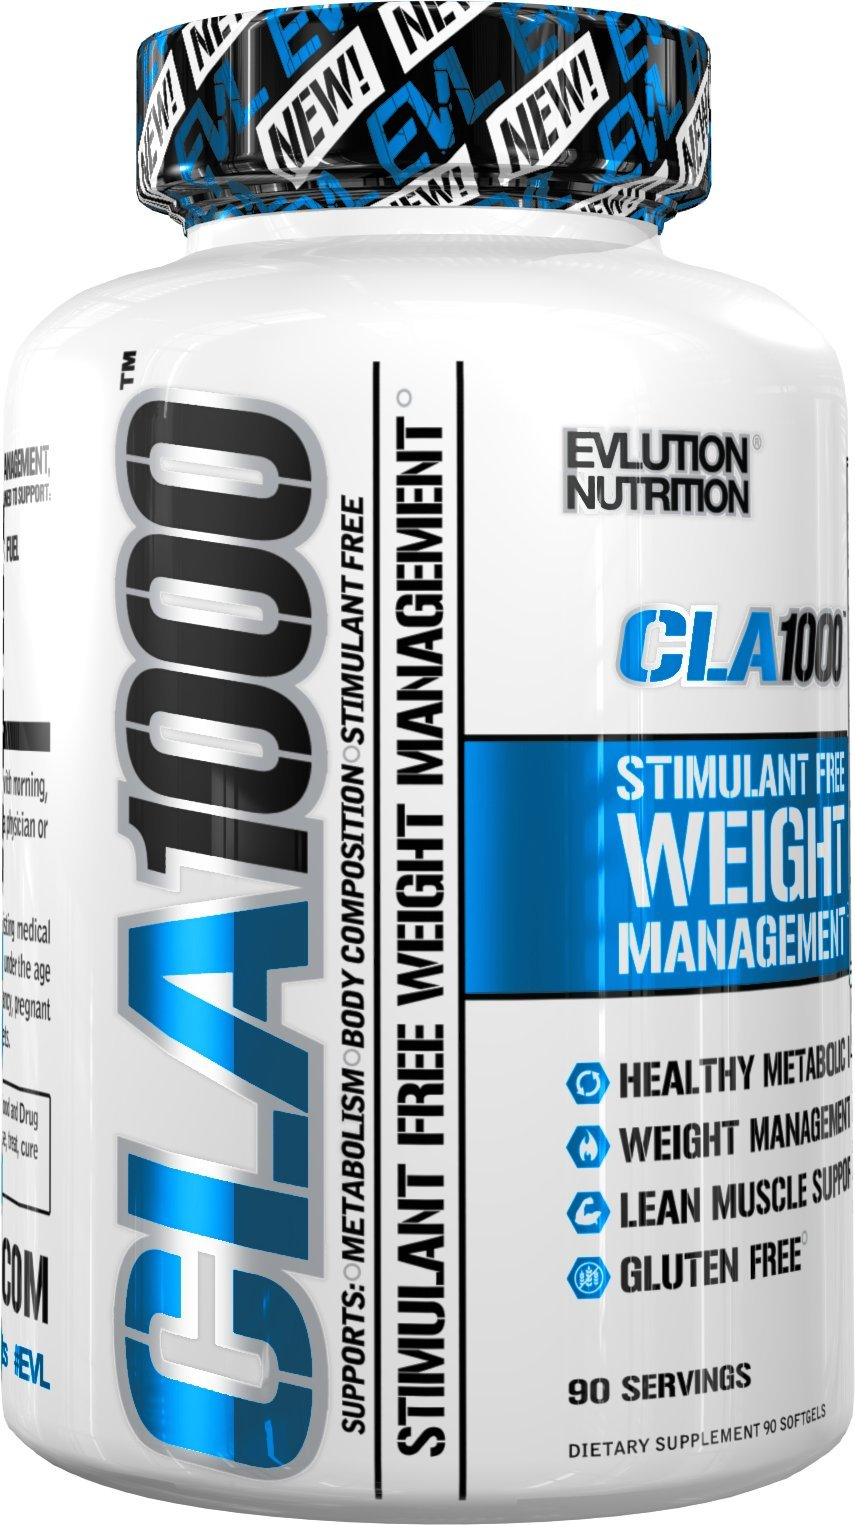 Evlution Nutrition CLA 1000 Conjugated linoleic acid, 90 Serving Soft Gel, Weight Loss Supplement, Stimulant-Free by Evlution